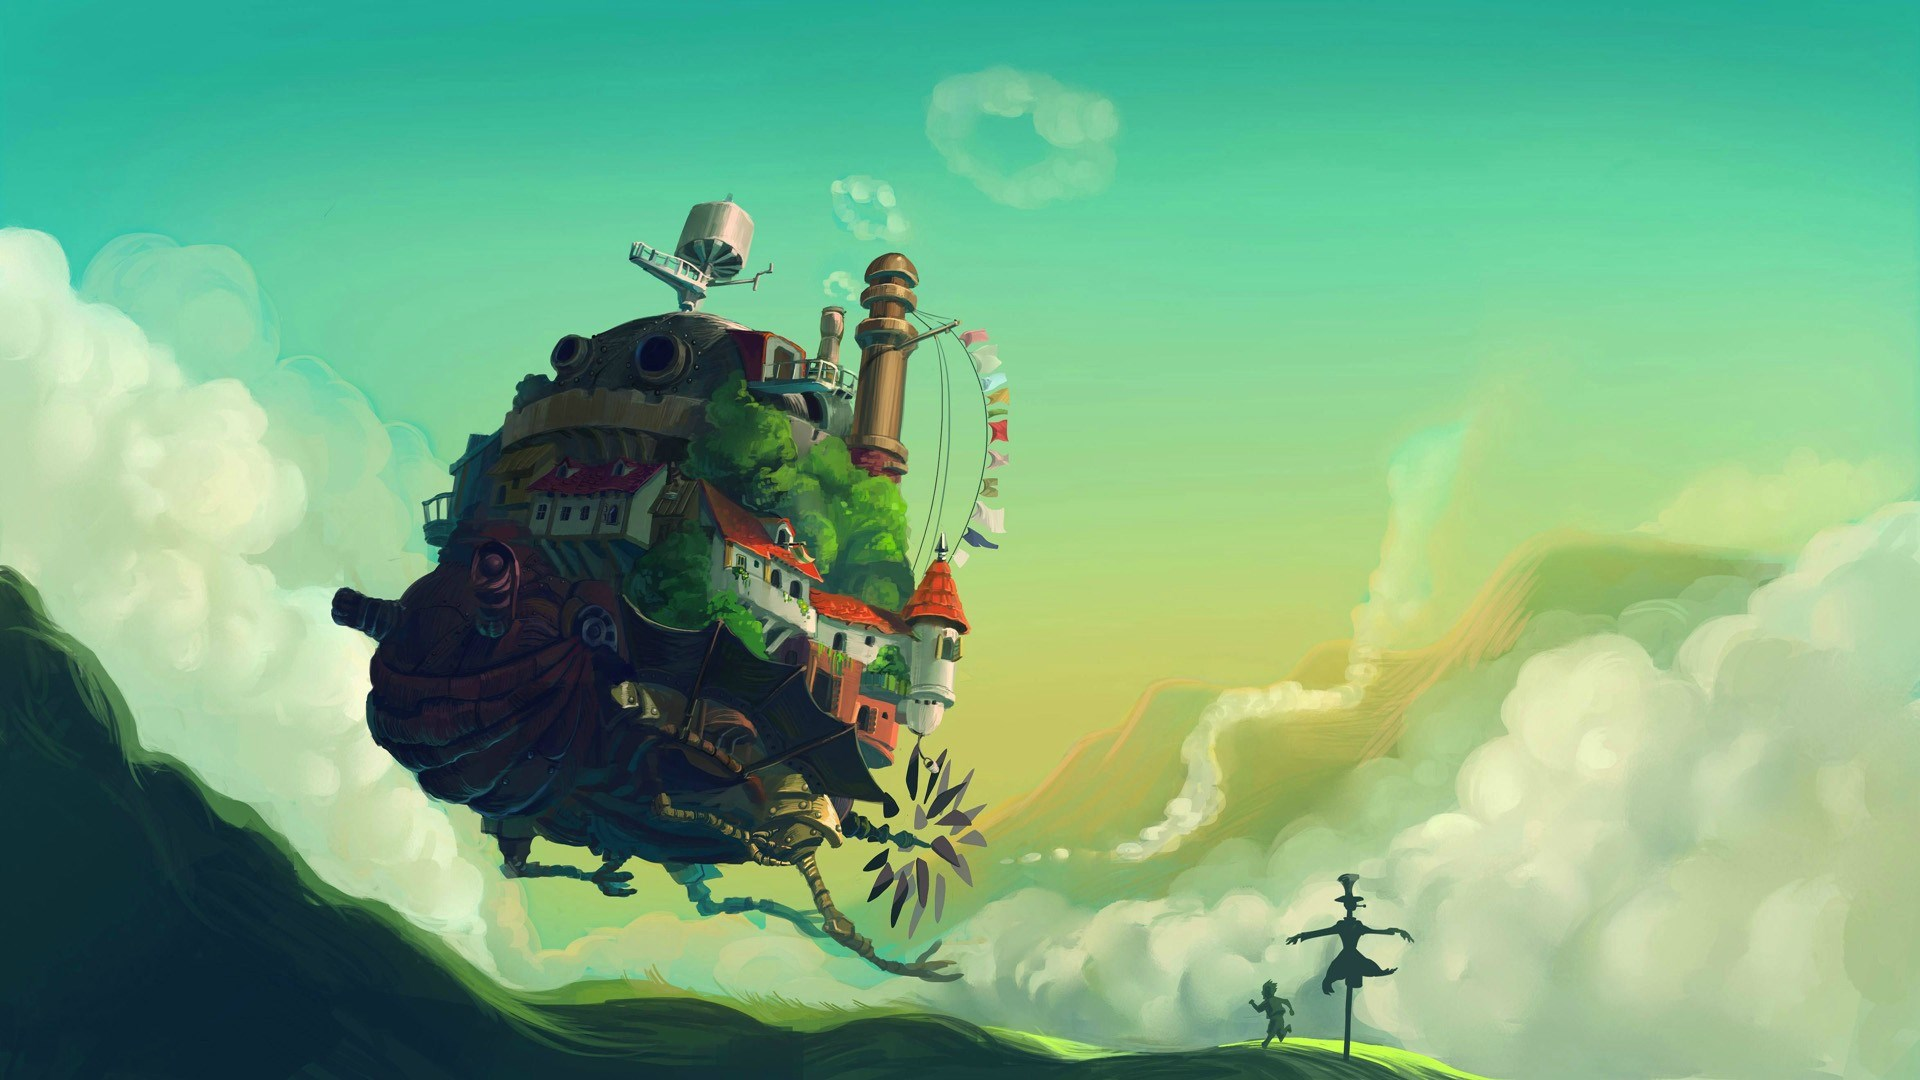 howls-moving-castle-Collection-1920x1080-wallpaper-wpc9006223